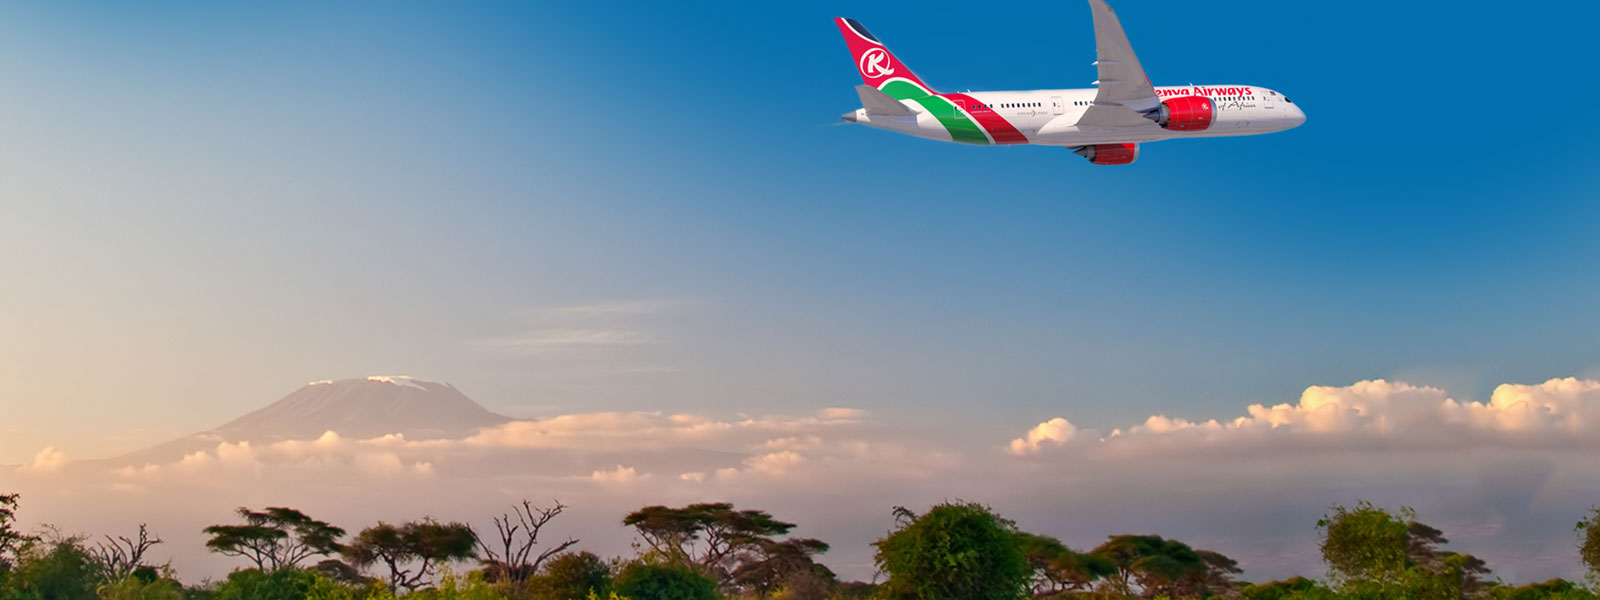 KENYA AIRWAYS PROMOTION CODE